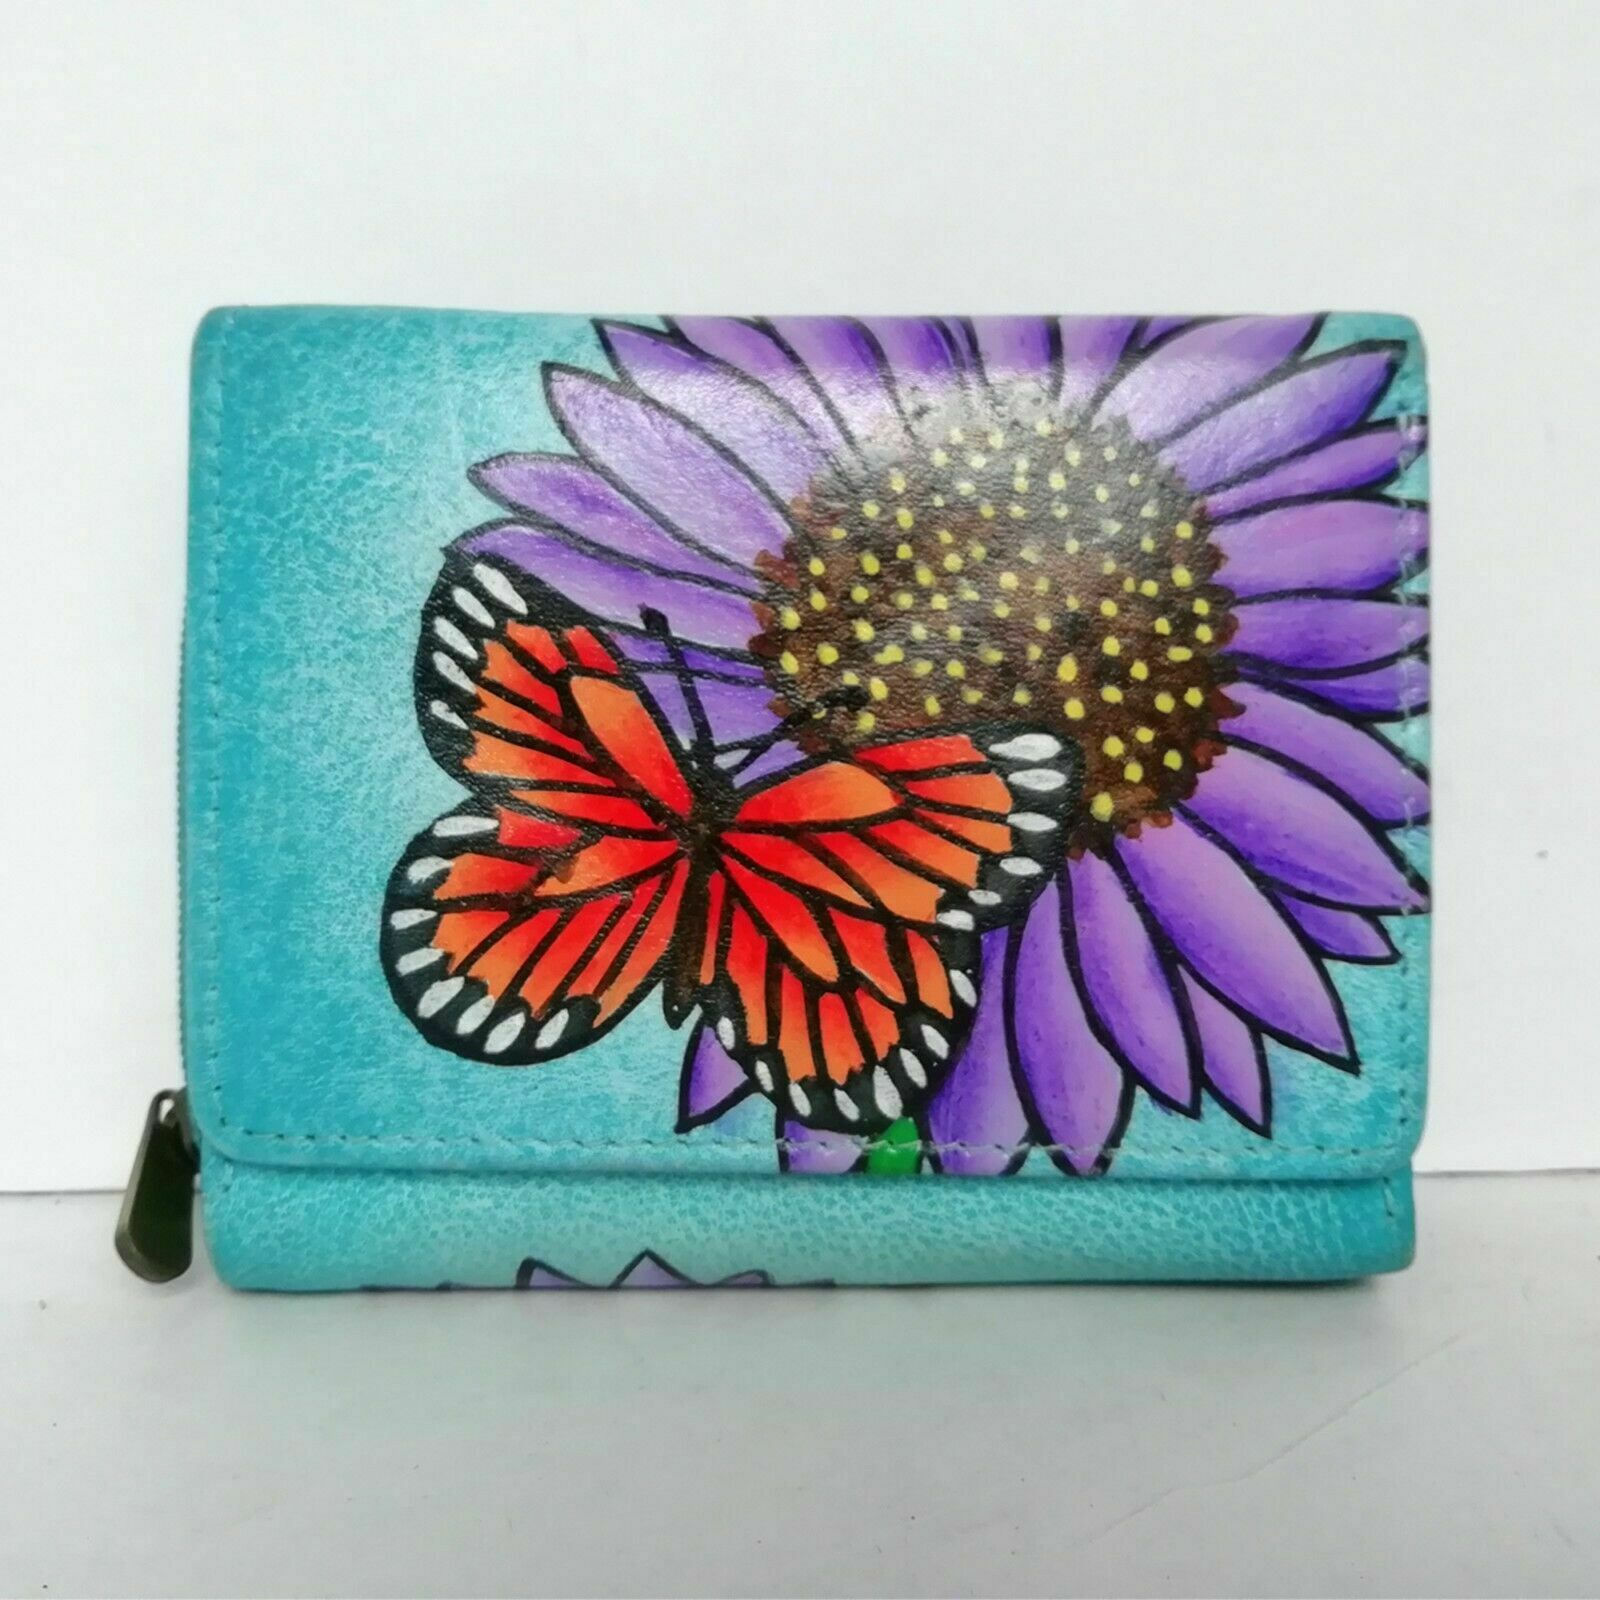 Balona Women Leather Floral Butterfly Handpainted Small Mini Wallet Money Purse